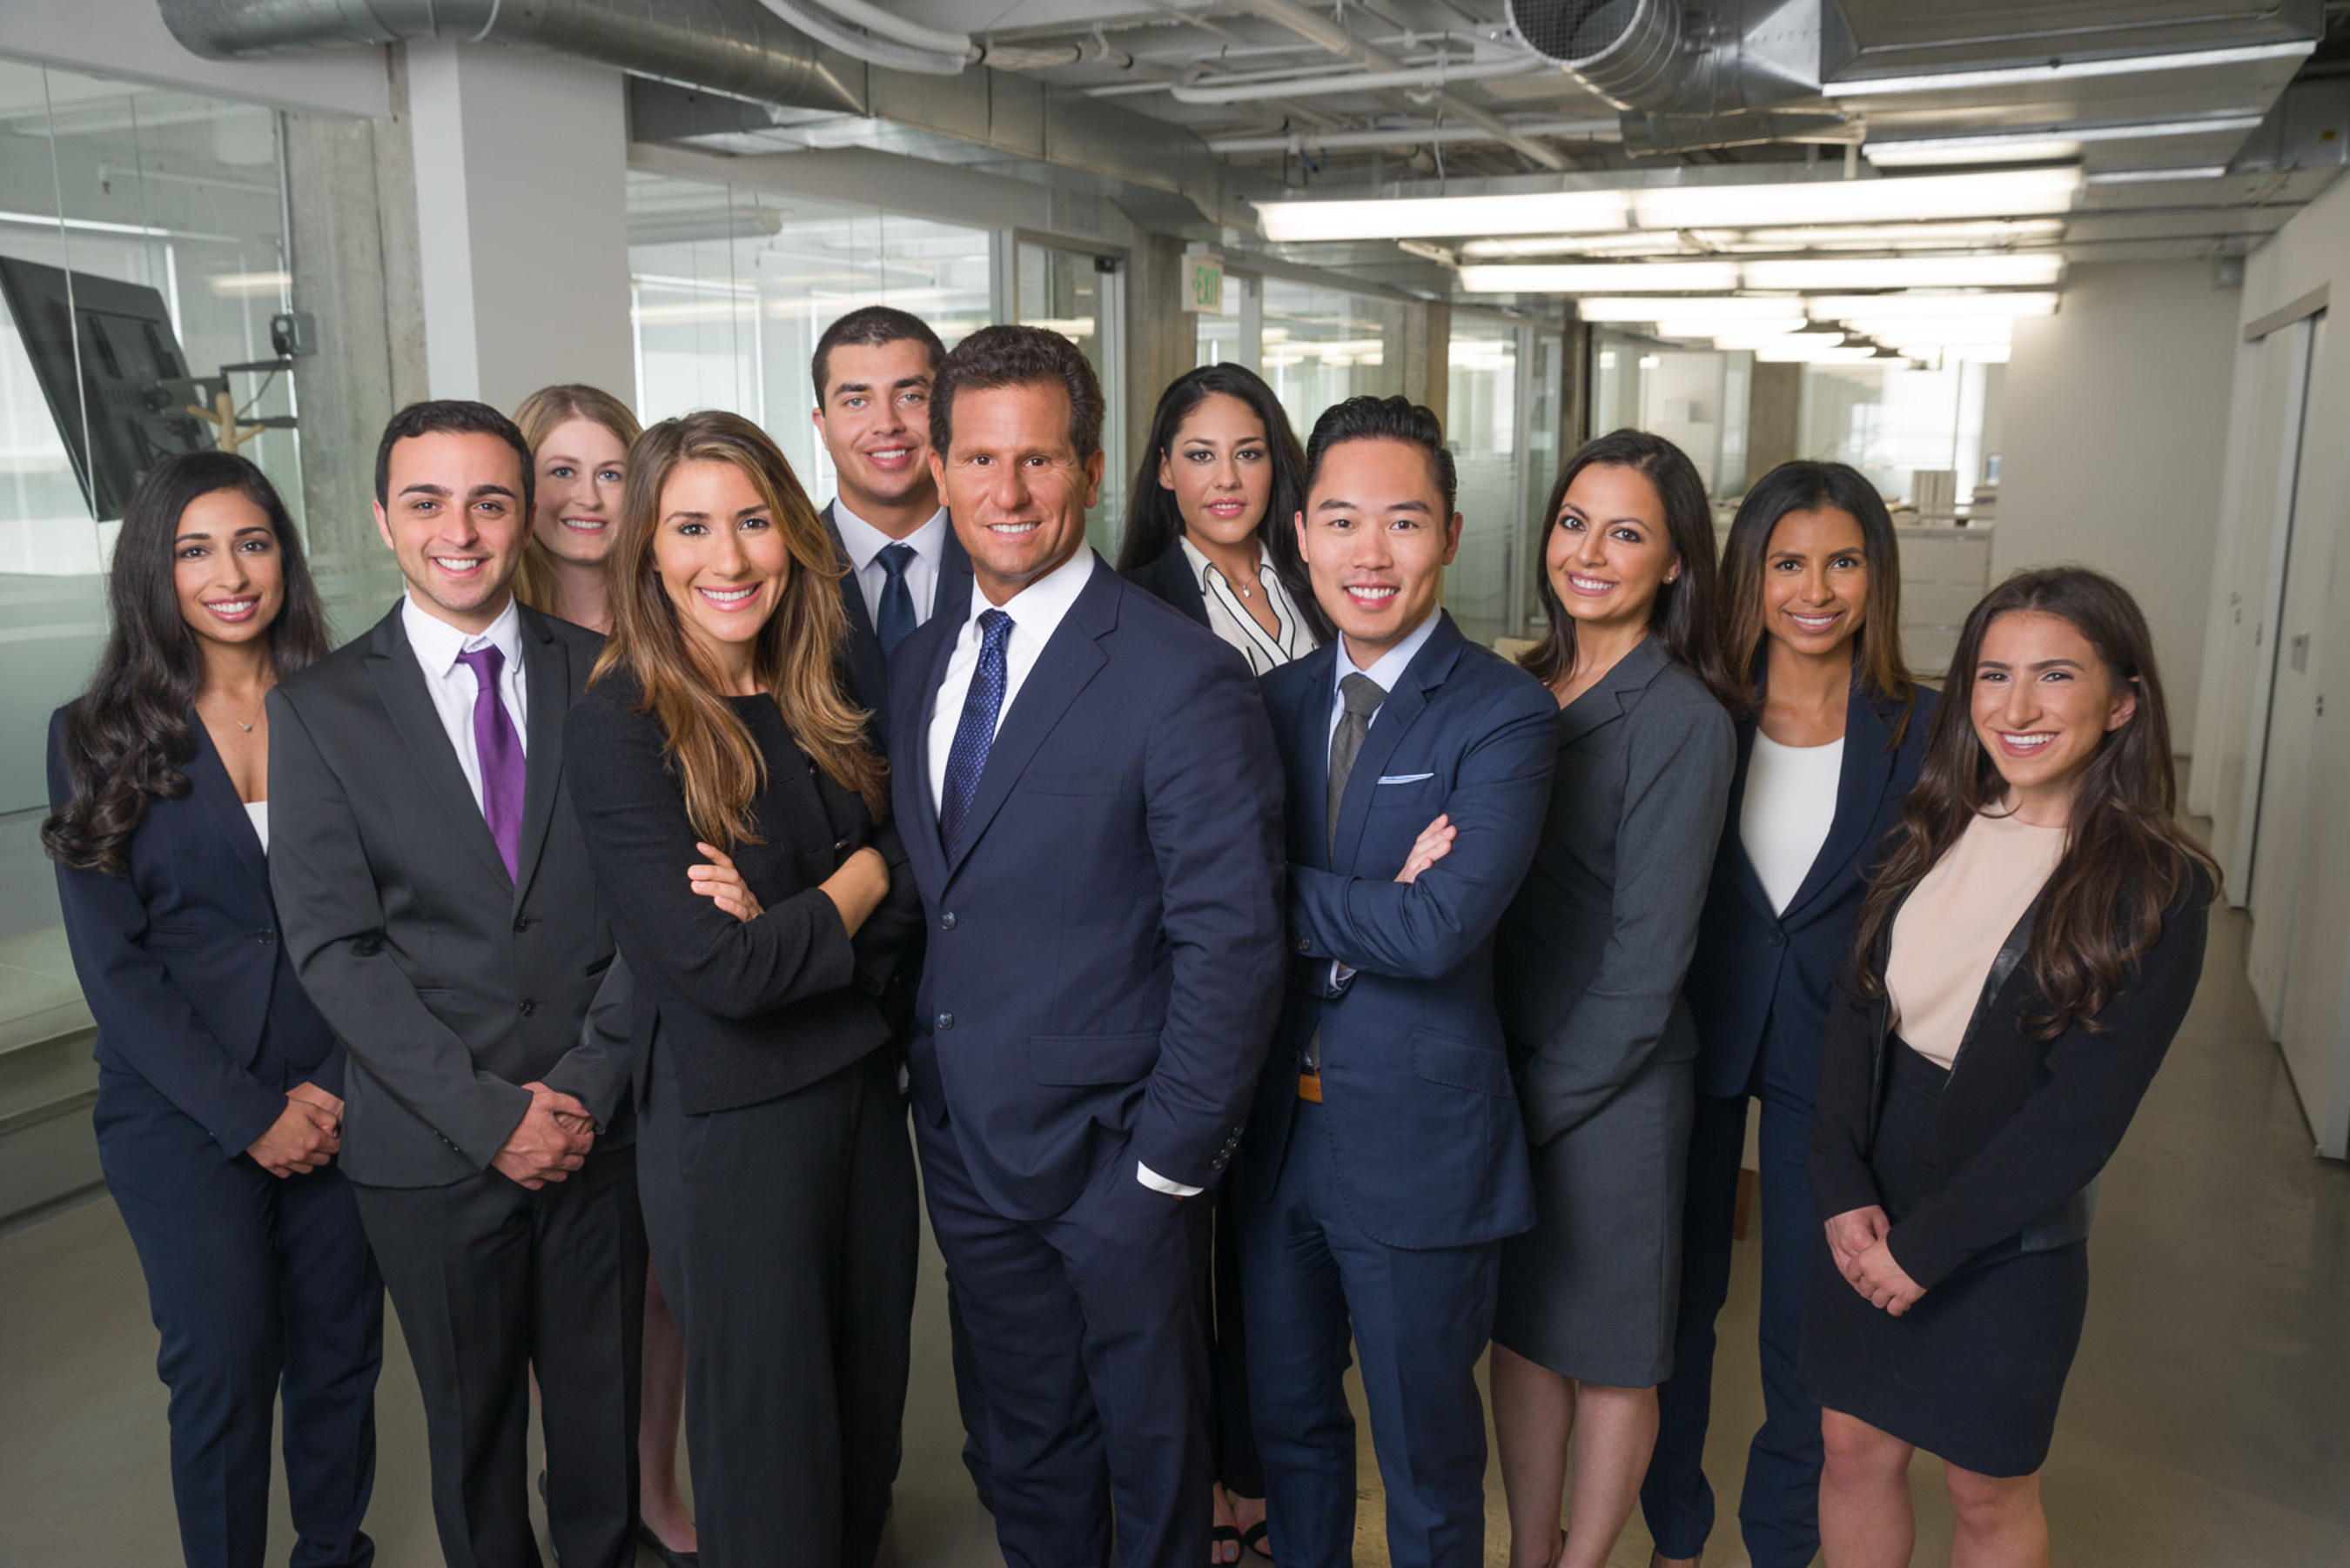 Carney Shegerian with his legal team at the Los Angeles offices of Shegerian & Associates